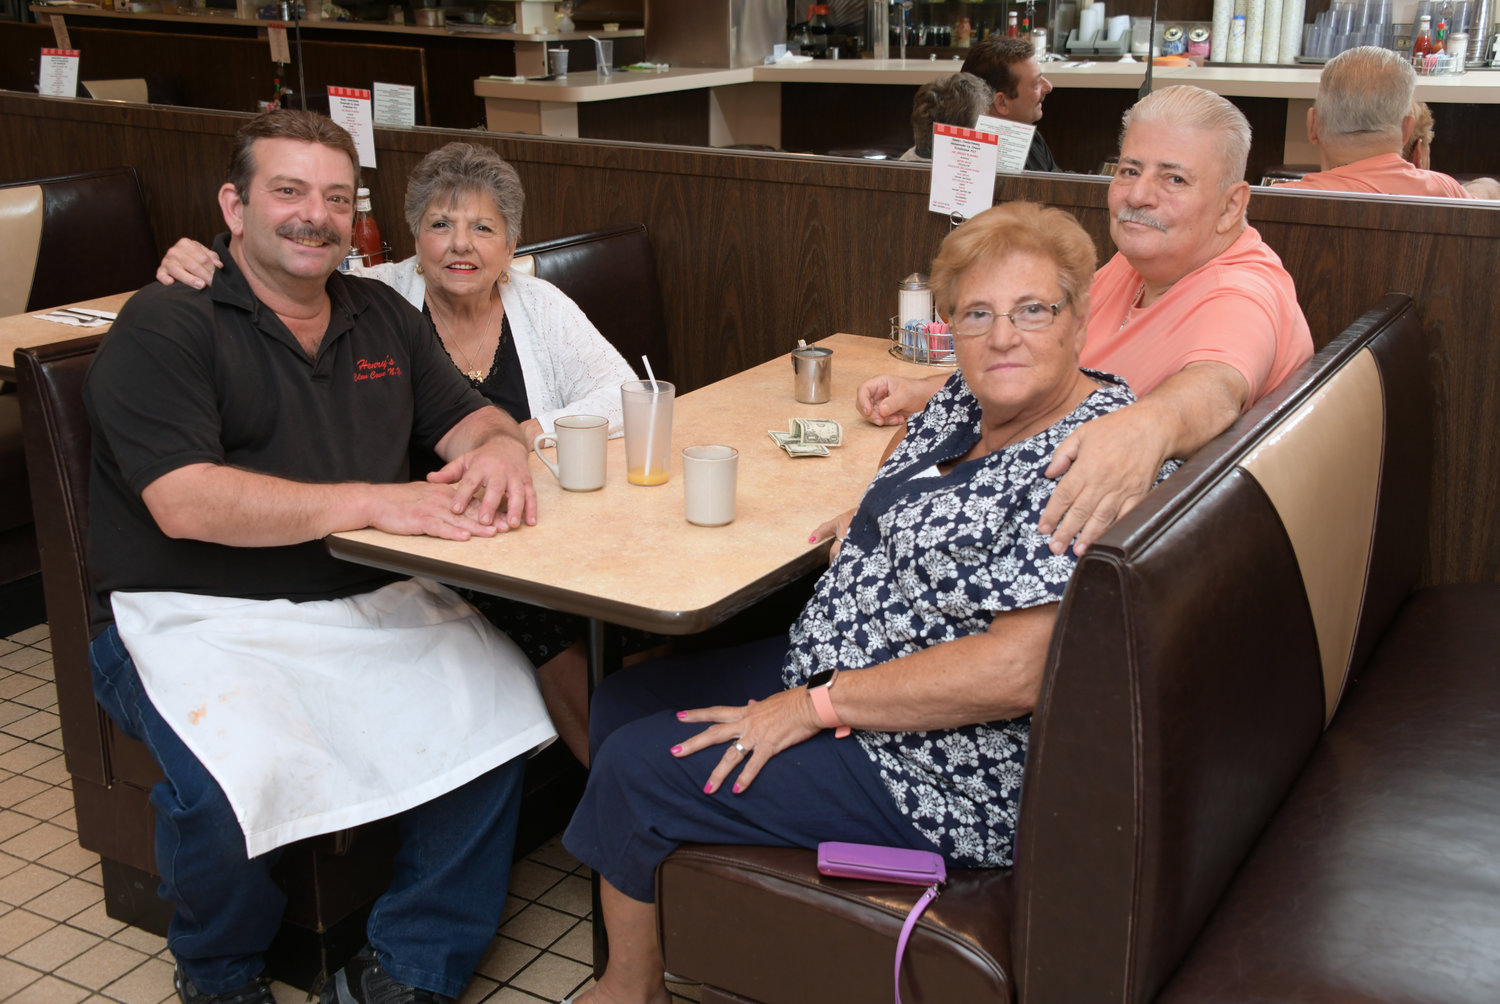 Valensisi shared coffee with customers, from left, Angie Basile and Patricia and Al Errico.